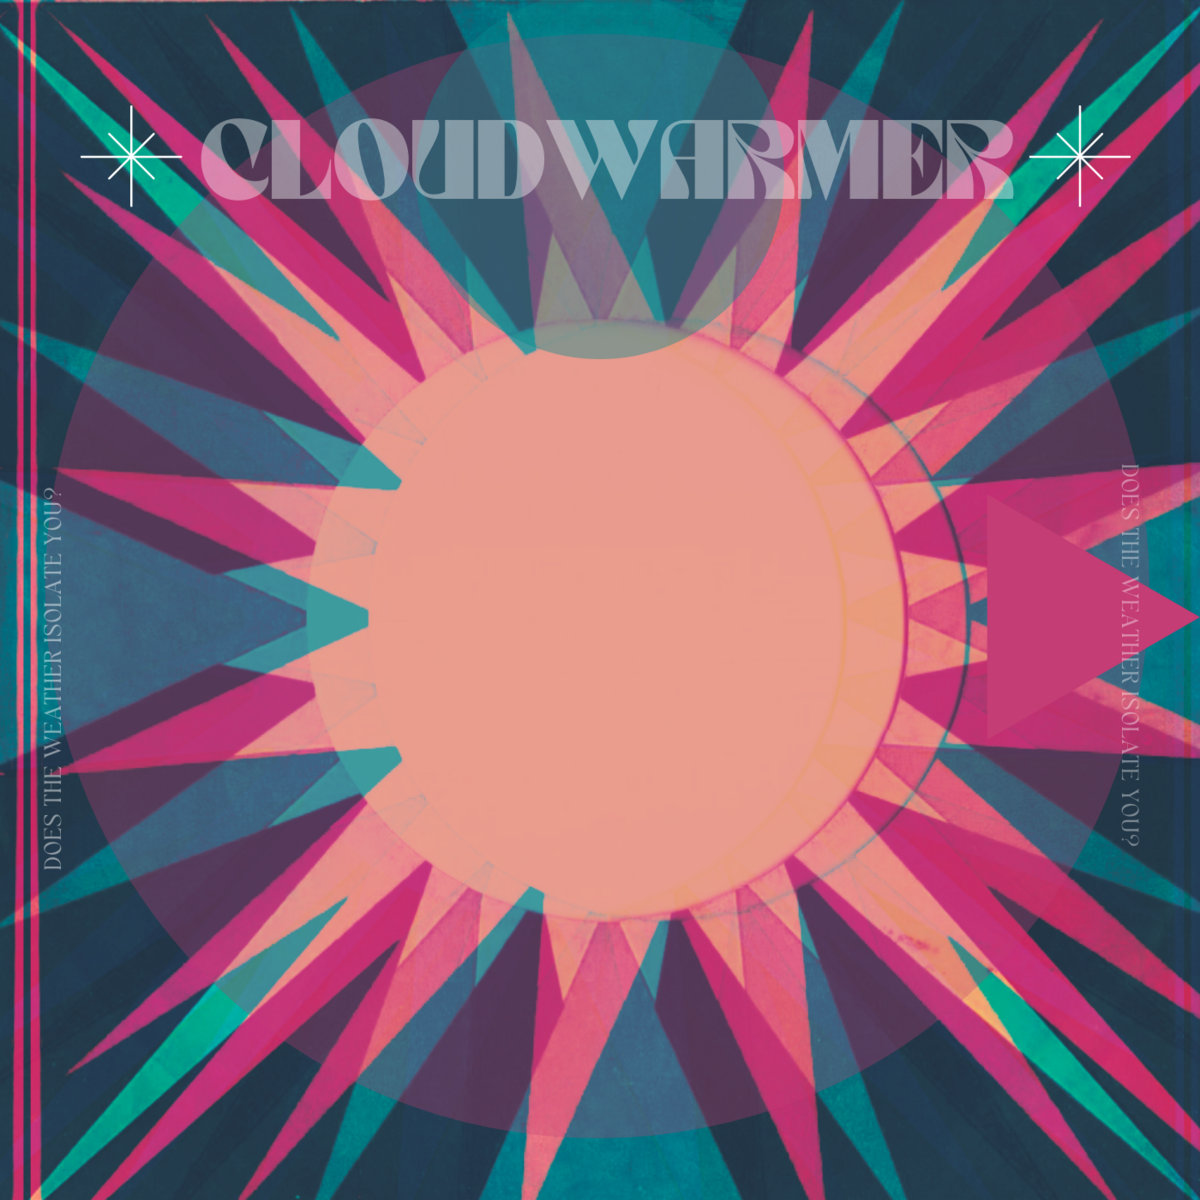 CLOUDWARMER – Does The Weather Isolate You?